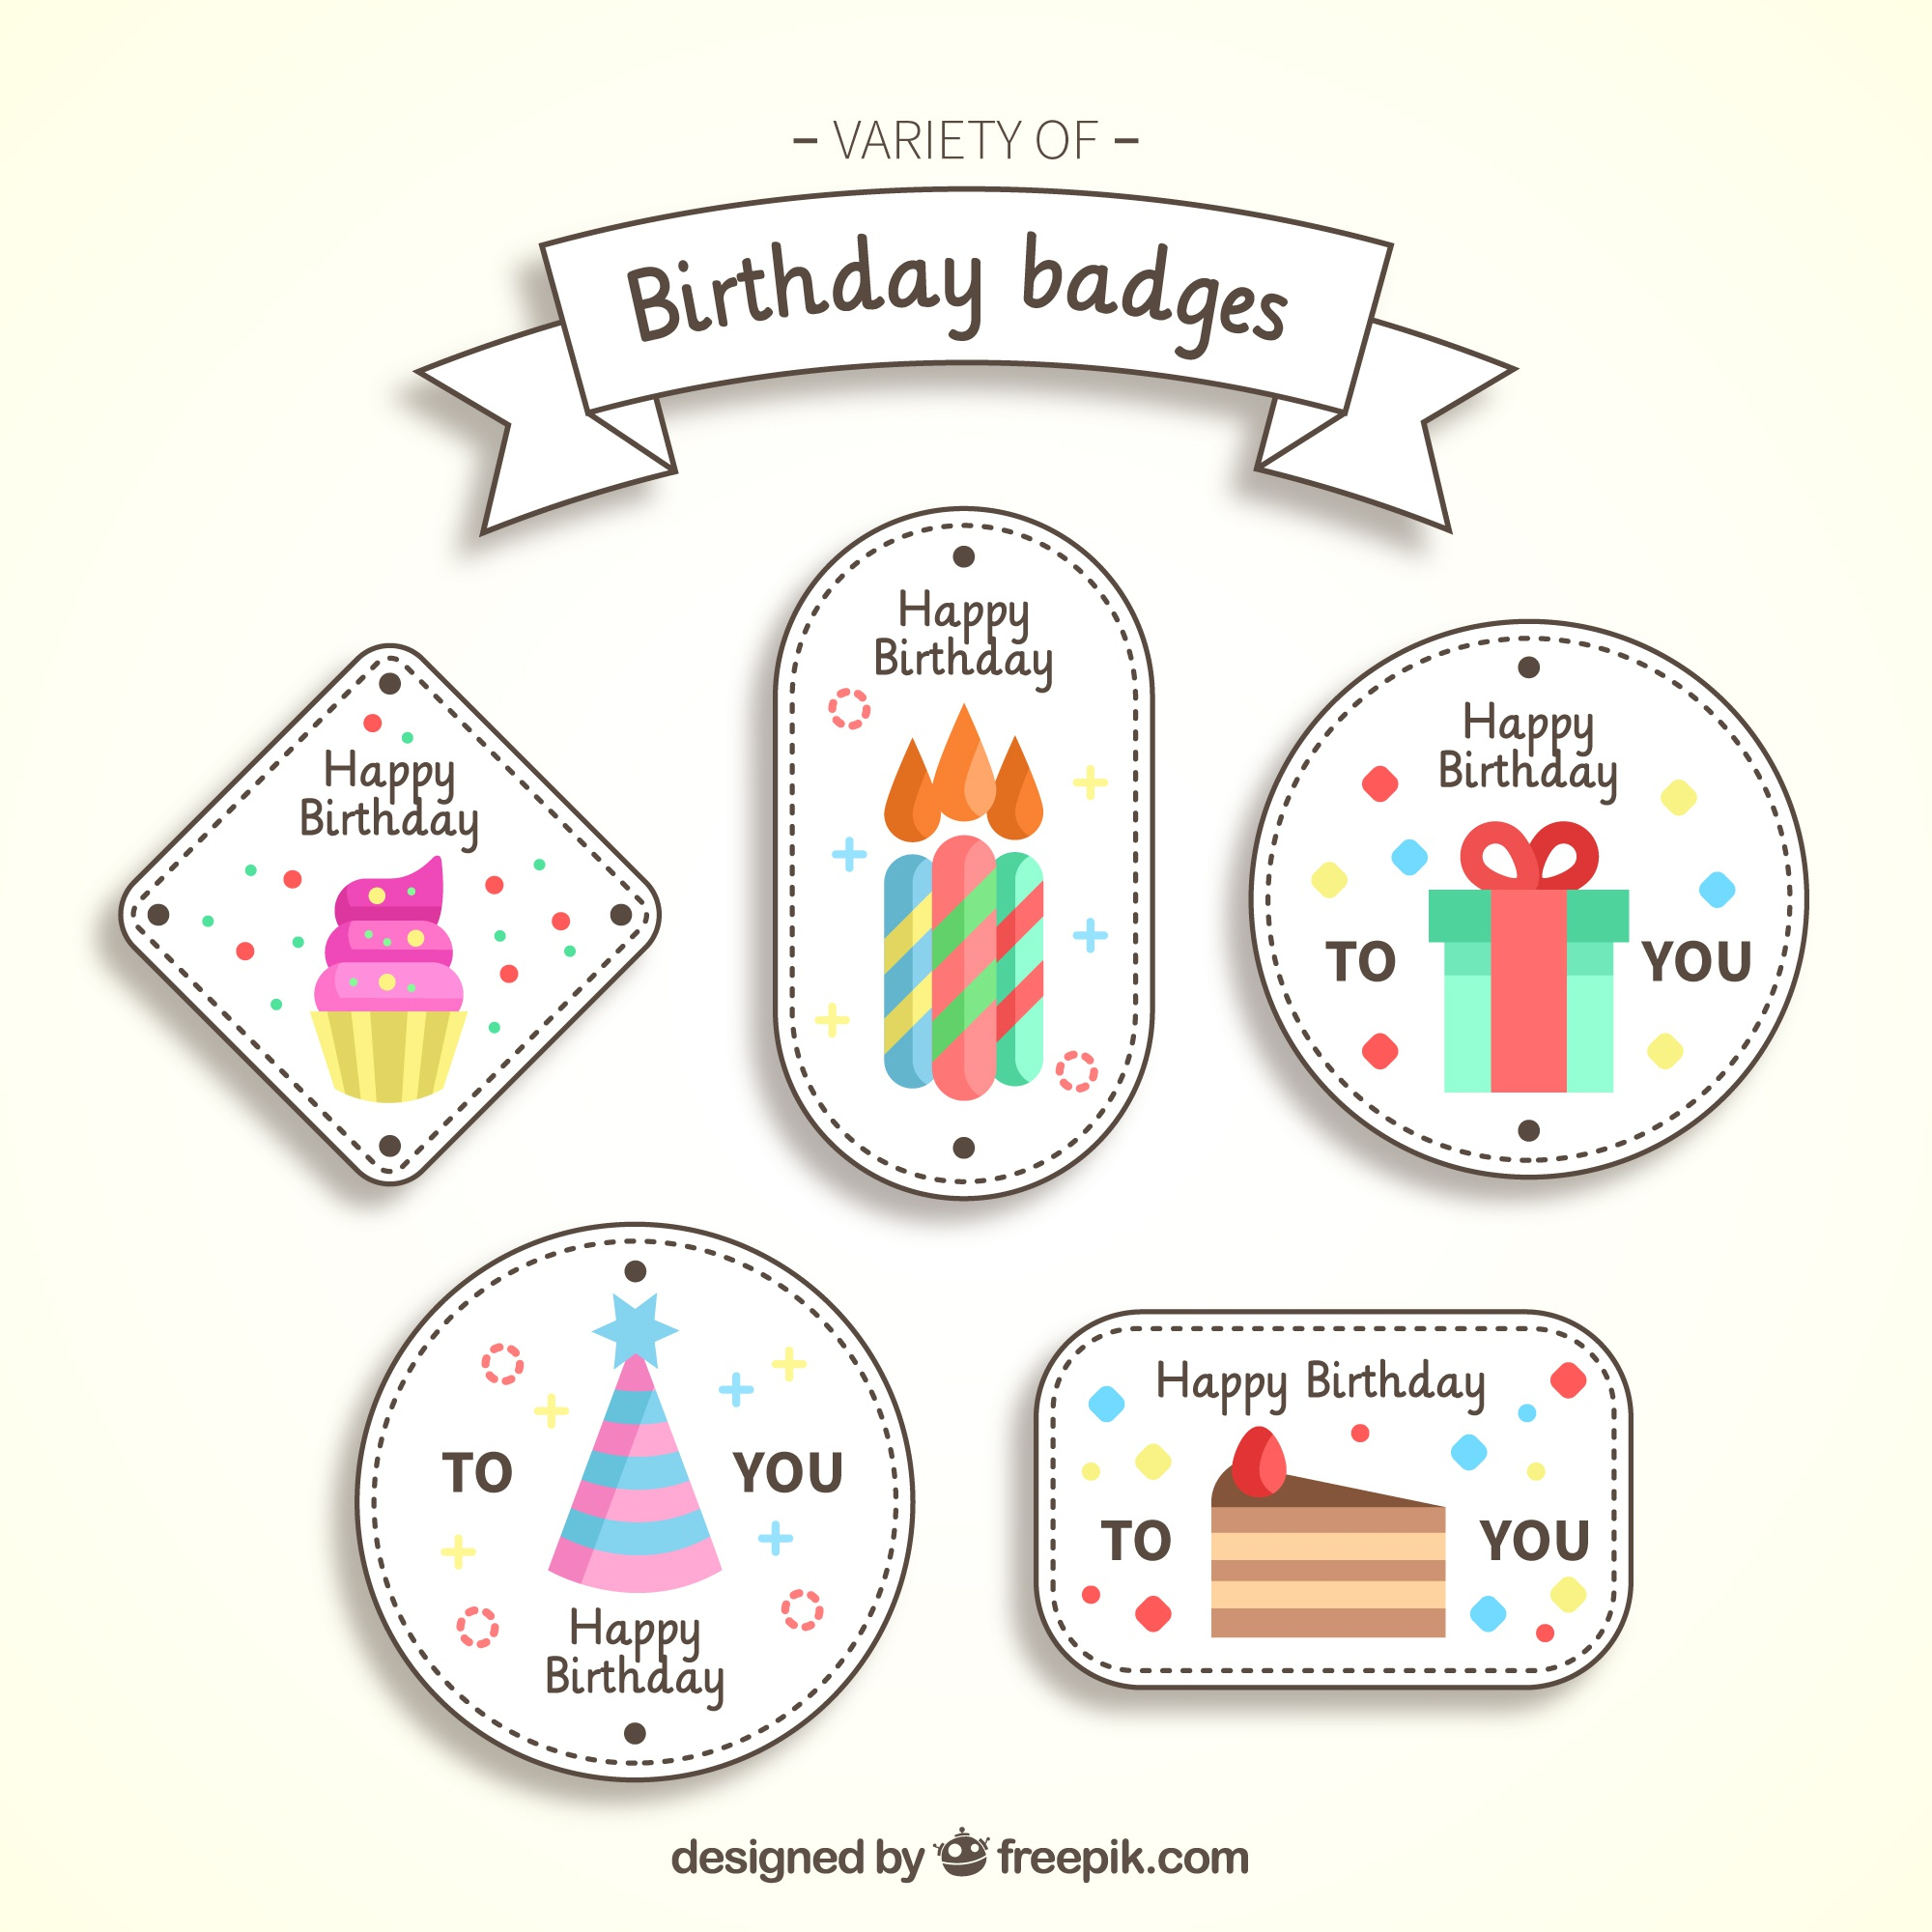 Fantastic birthday badges in flat design